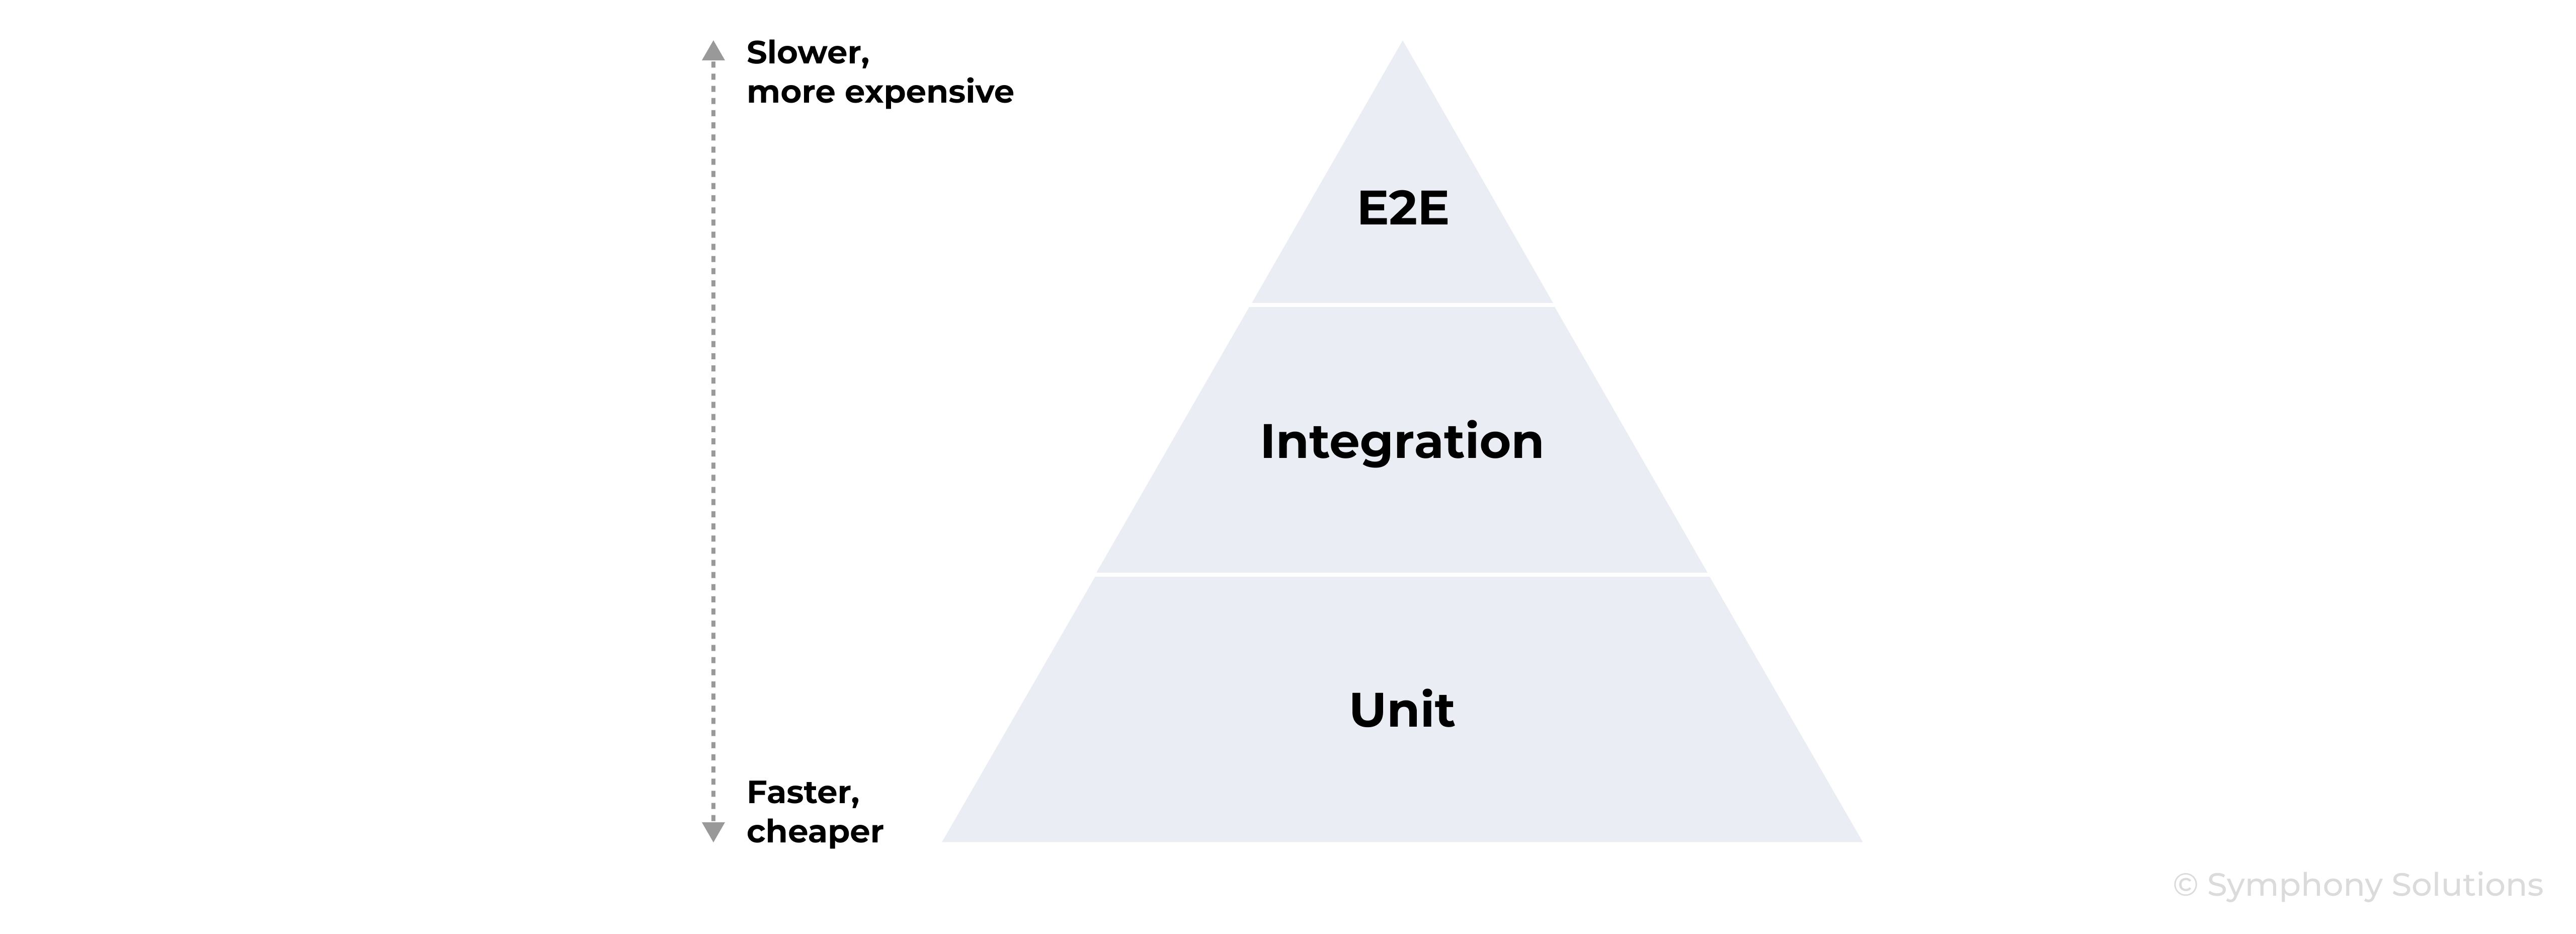 test automation pyramid concept